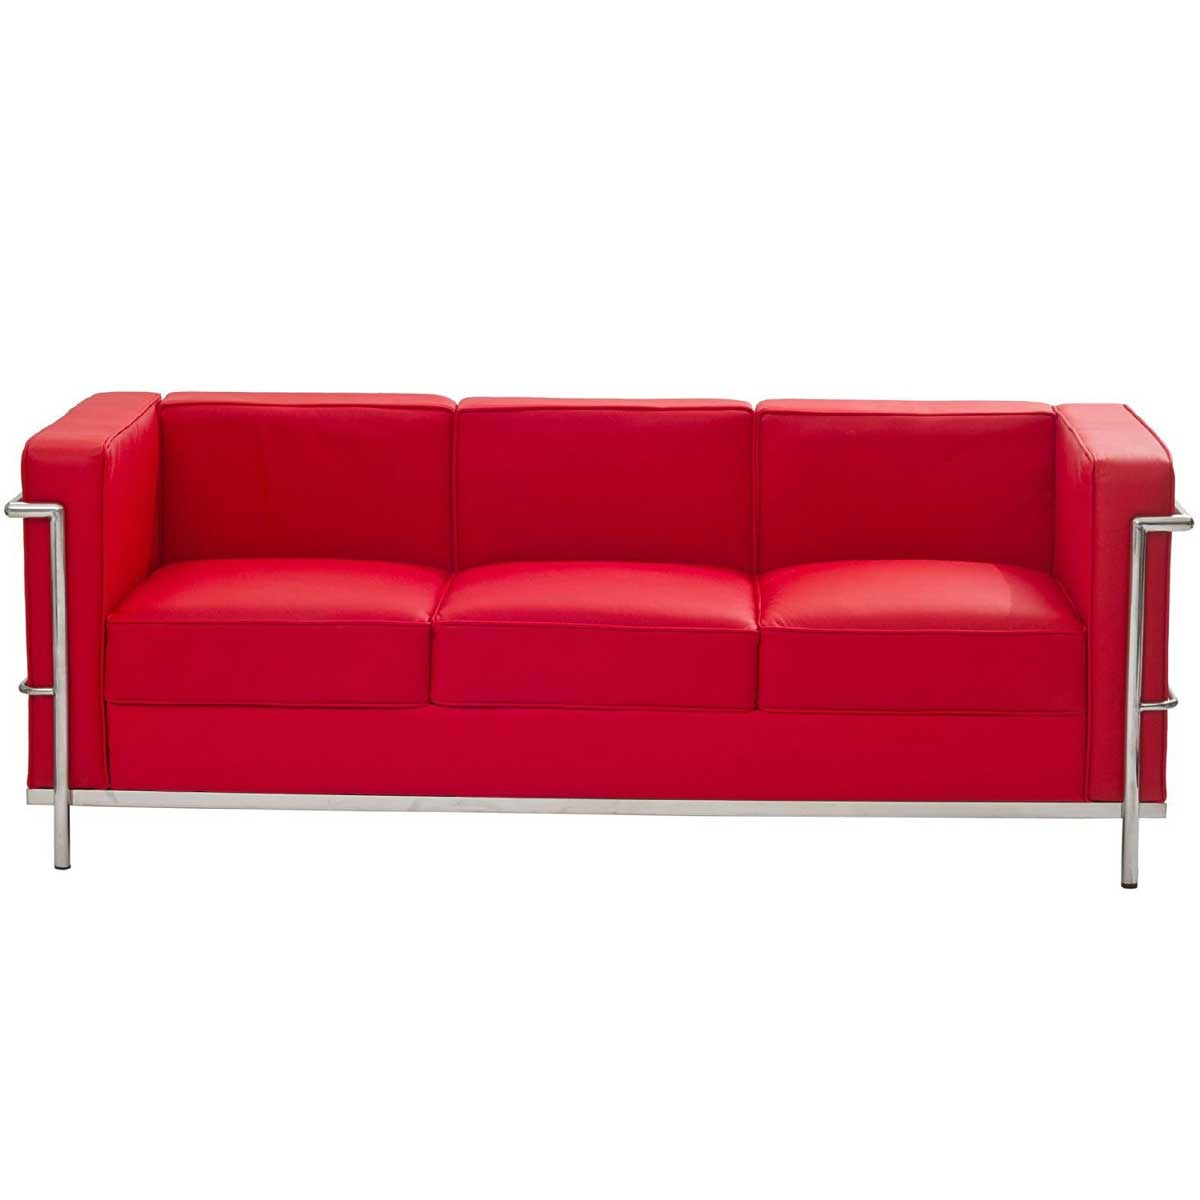 for set tacoma couch room counseling johnston living red maxwells blog